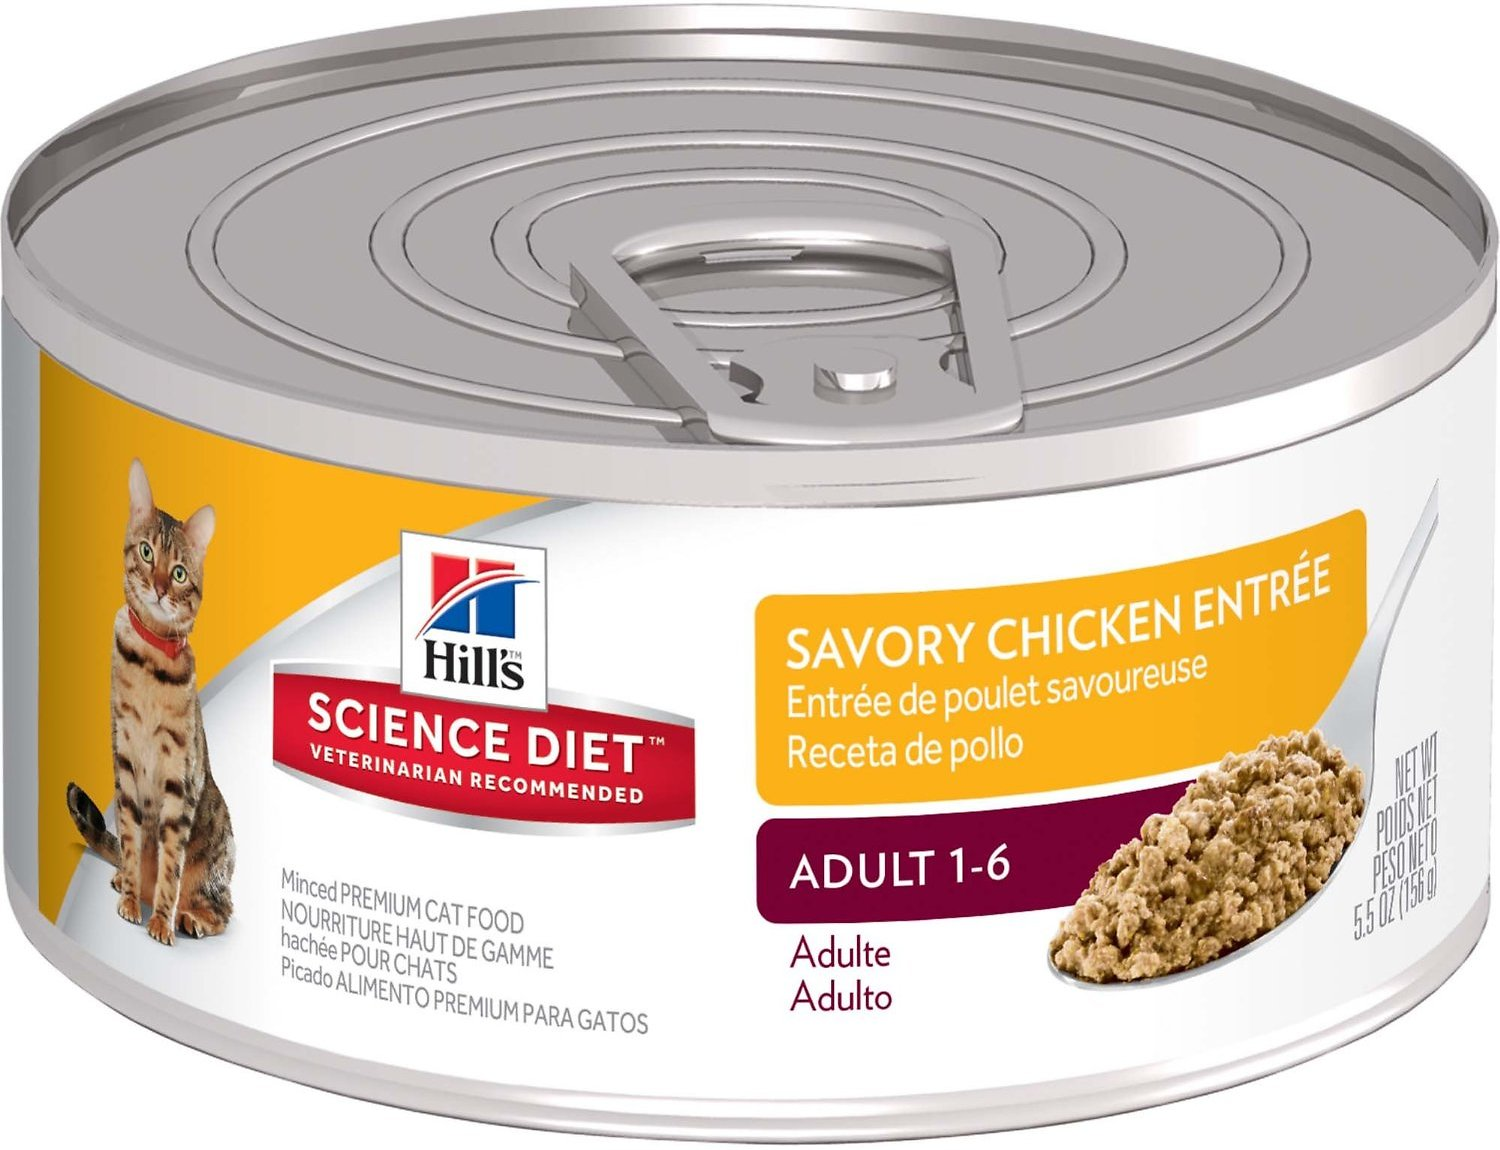 Hill's Science Diet Adult Savory Chicken Entree Canned Cat Food, 5.5-oz